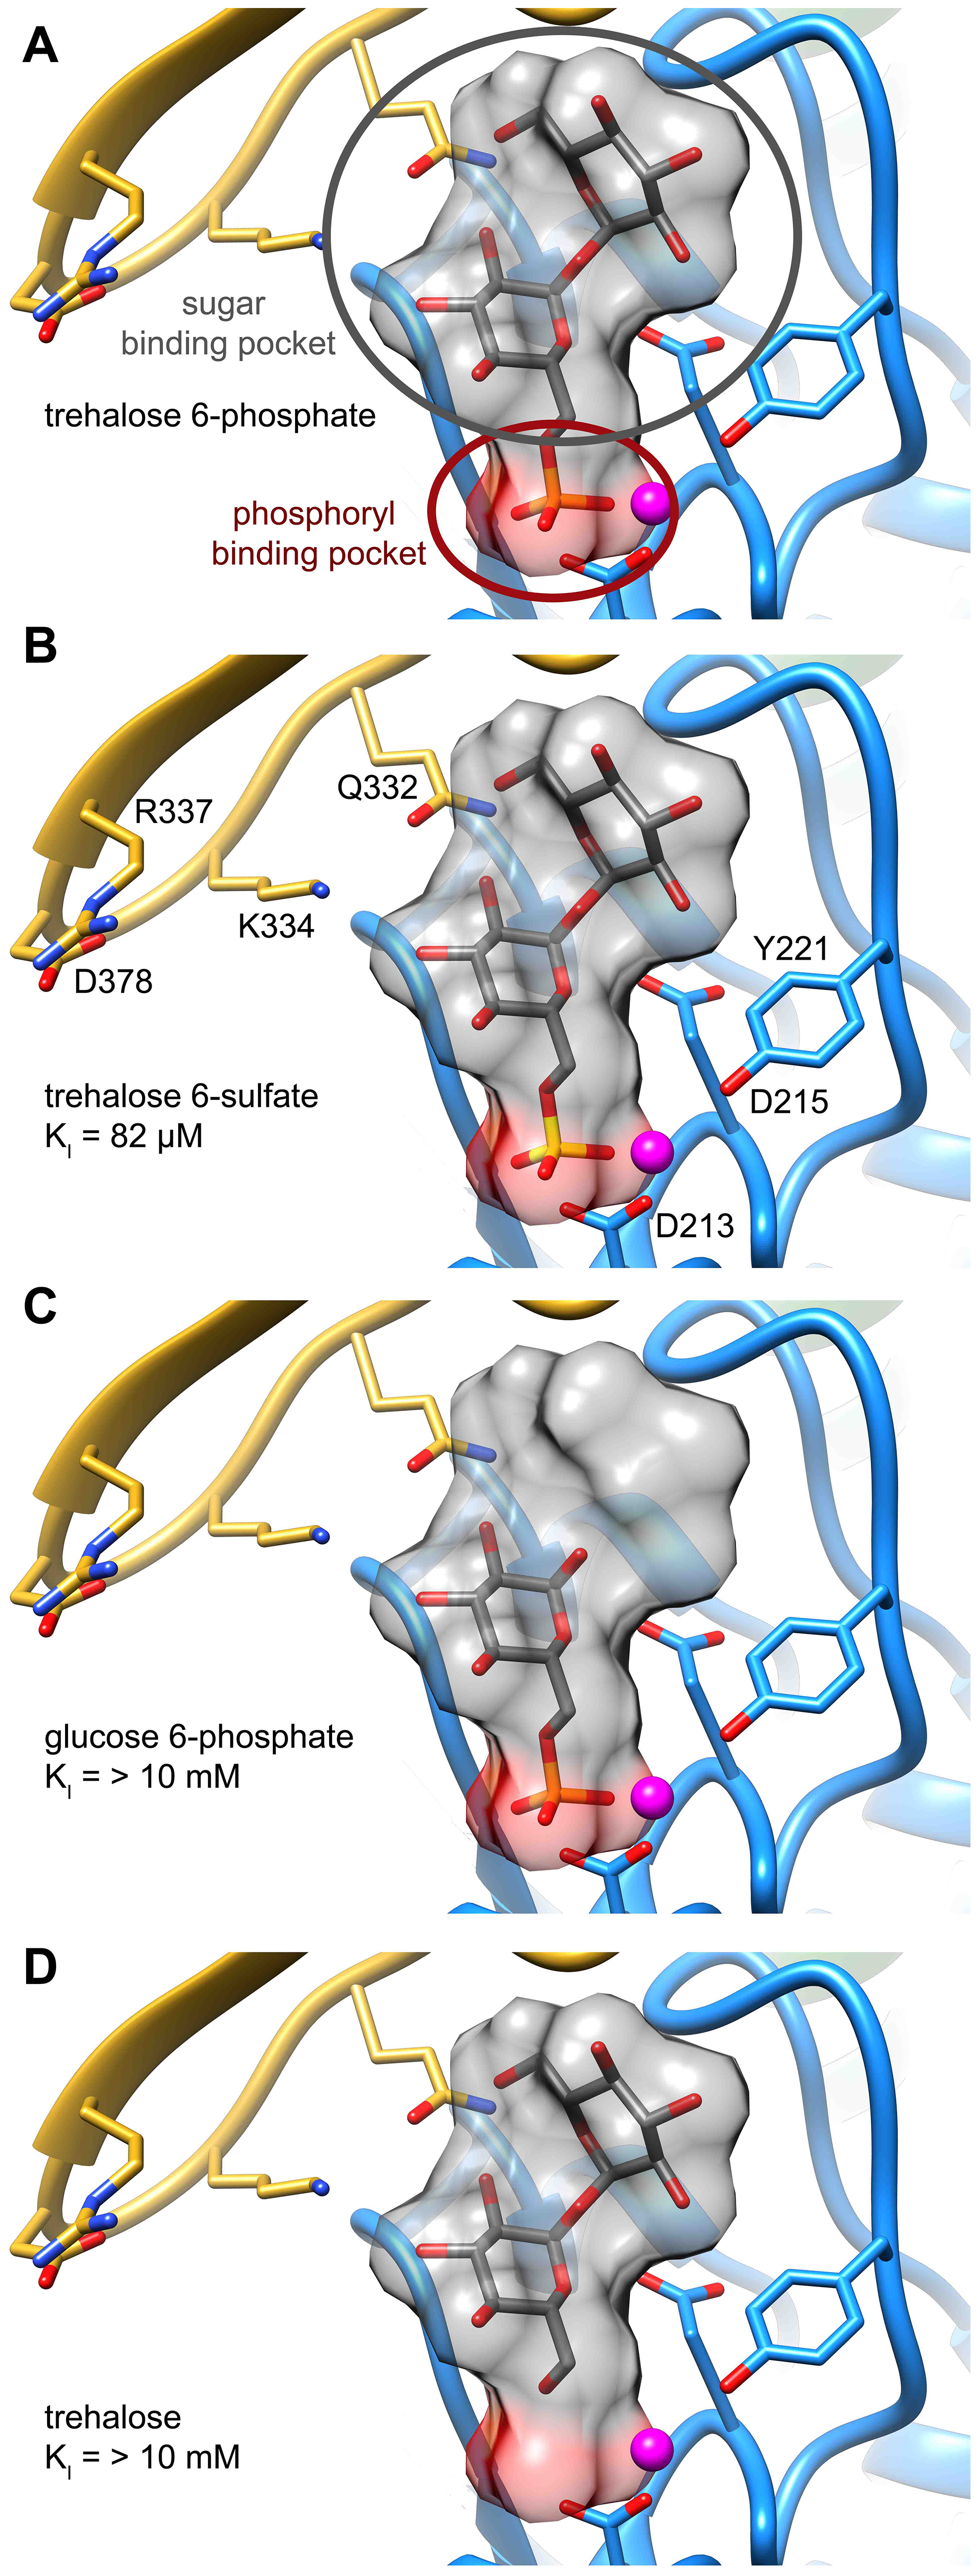 Two binding pockets in the T6PP enzyme.